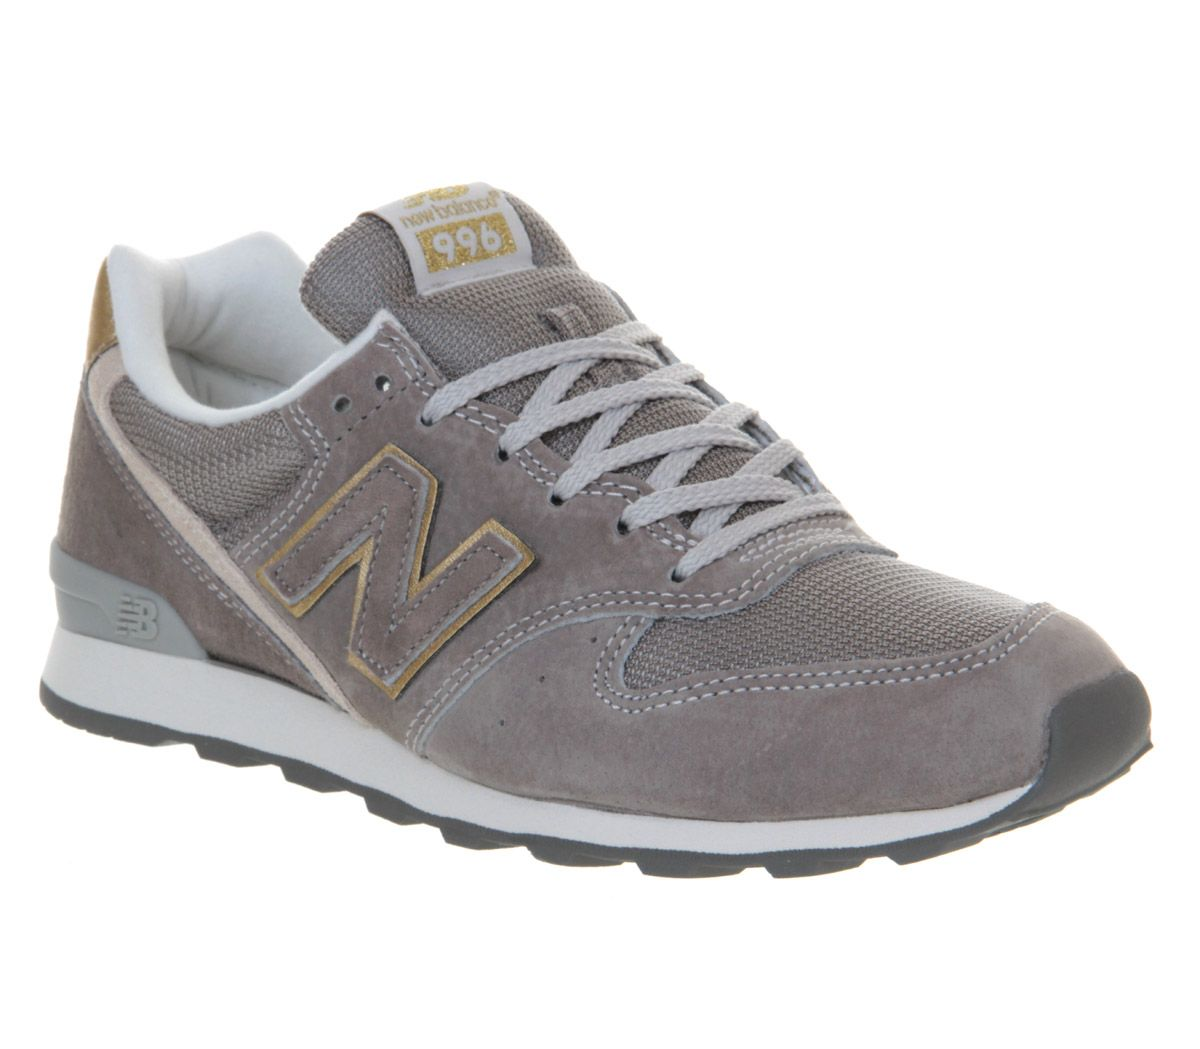 timeless design 27088 bc12d New Balance Wr996 Grey Exclusive - Hers trainers | New ...